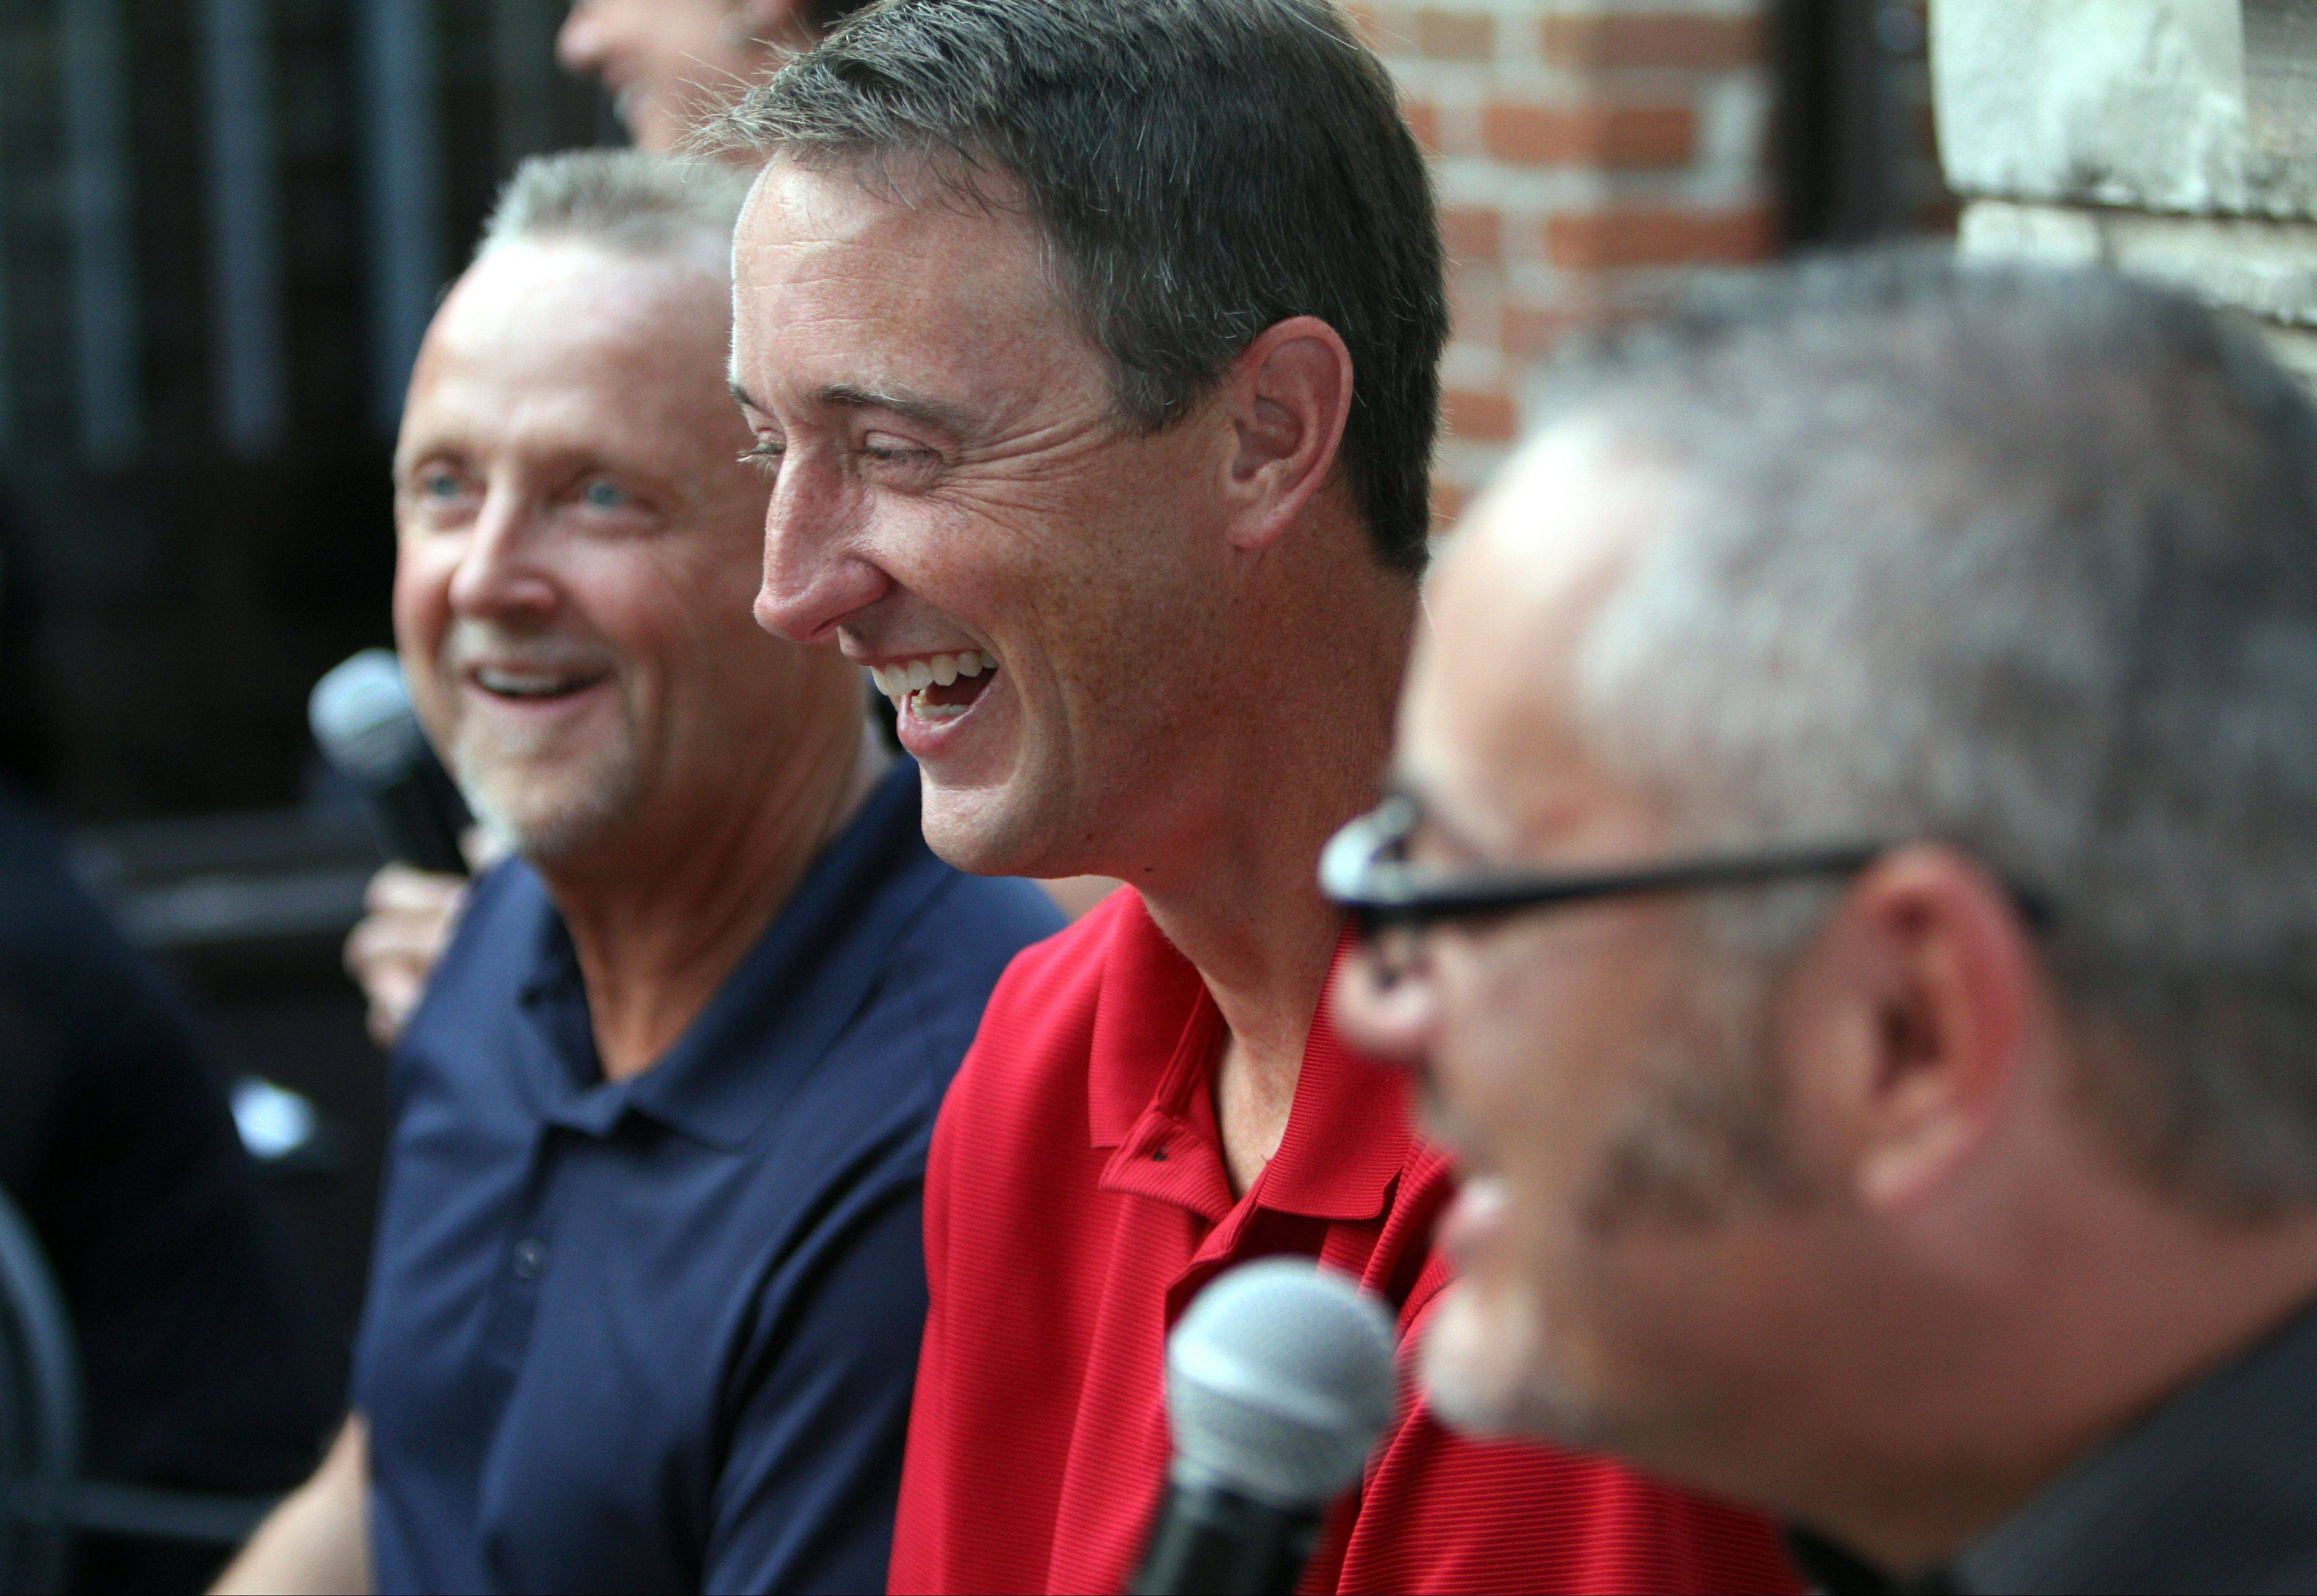 The Daily Herald hosted a Fantasy Football preview event Monday for about 100 subscribers with Fantasy Football columnist John Dietz, center, Bears beat writer Bob LeGere, left, and sports writer Joe Aguilar at Rack House Kitchen and Tavern in Arlington Heights.